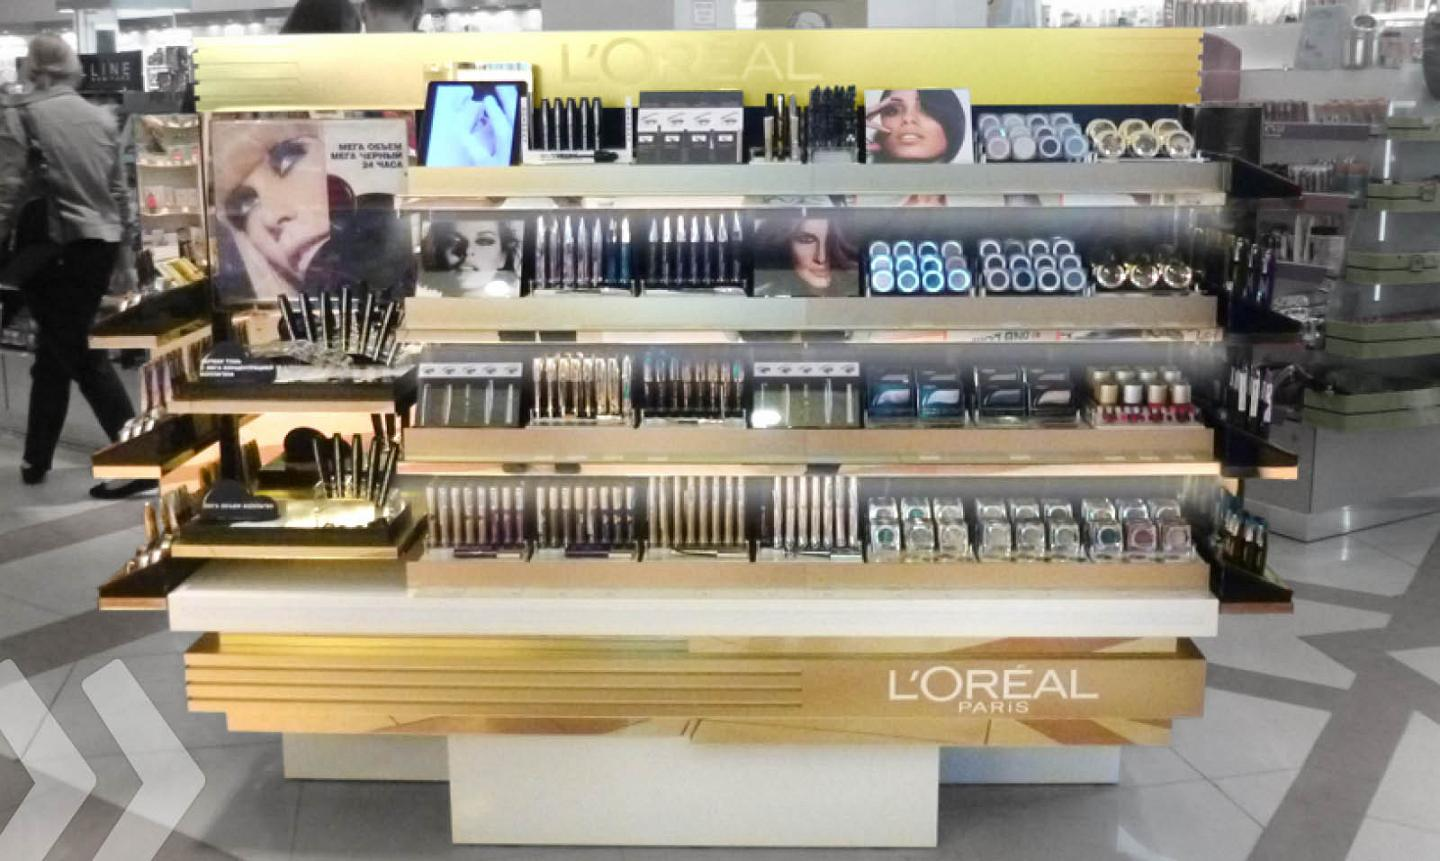 L'Oréal Display 2